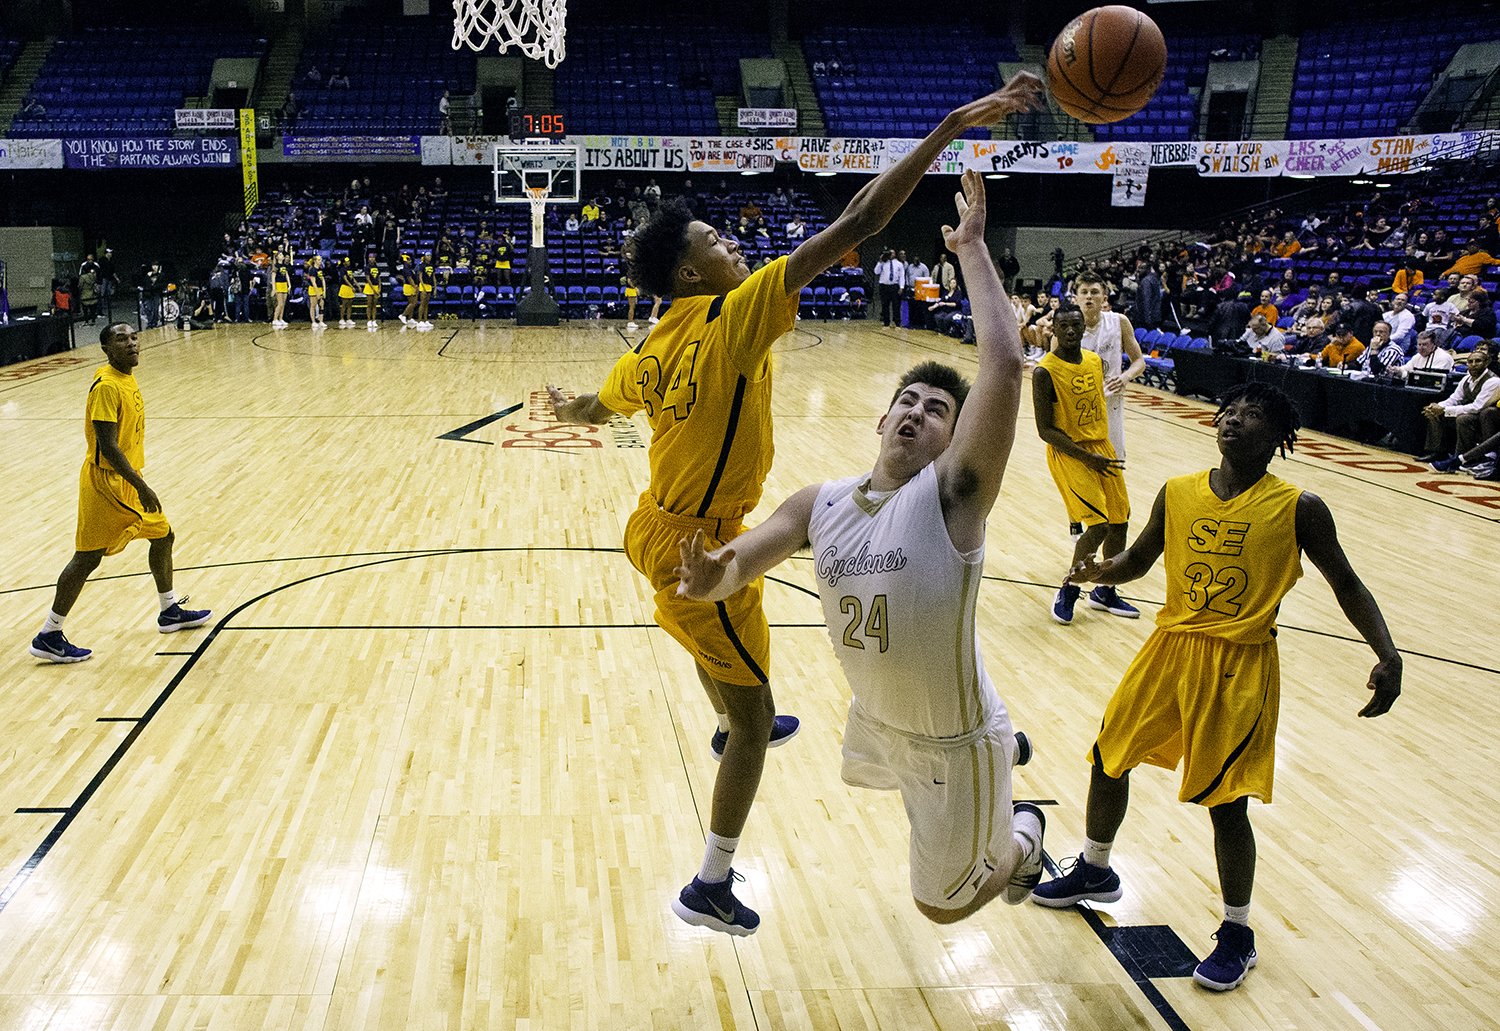 Southeast's Michael Tyler blocks Sacred Heart-Griffin's Nick Broeker as he drives the lane during the Boys City Tournament at the Bank of Springfield Center Thursday, Jan. 18, 2018. [Ted Schurter/The State Journal-Register]